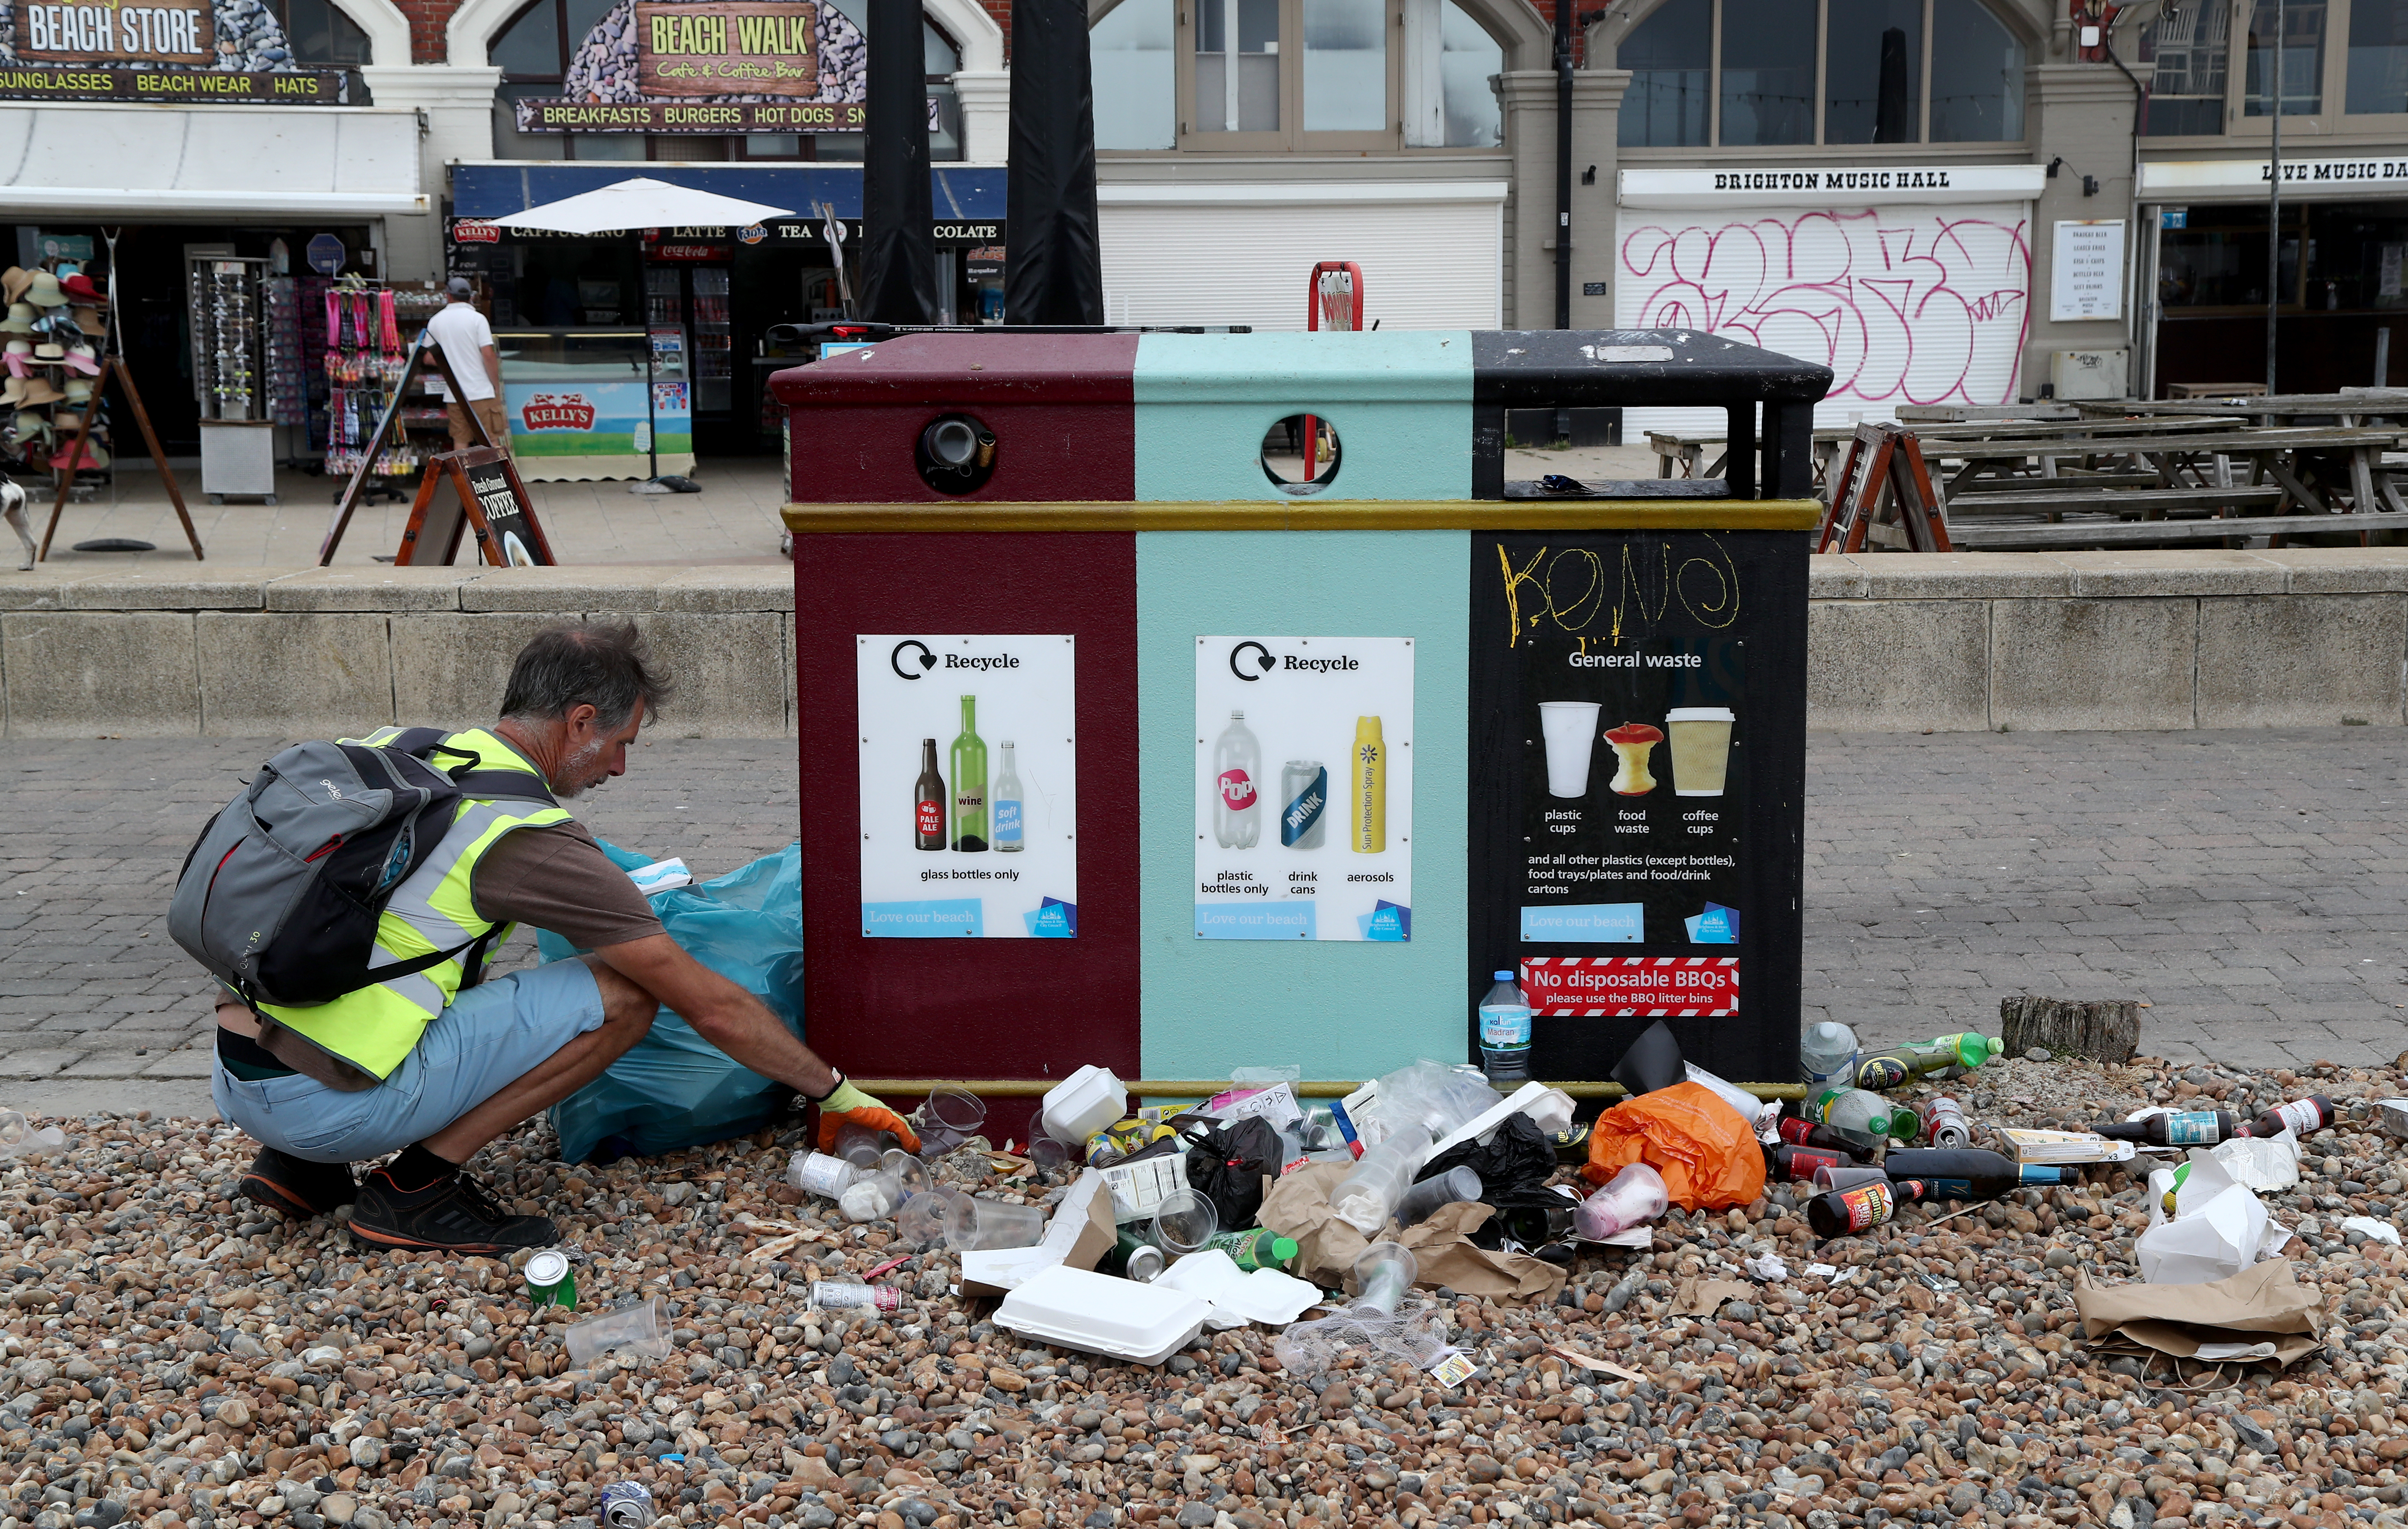 A man clears rubbish left by beachgoers in Brighton as thunderstorms and torrential rain are forecast to sweep across the UK, bringing an end to a week of blazing sunshine and scorching temperatures.